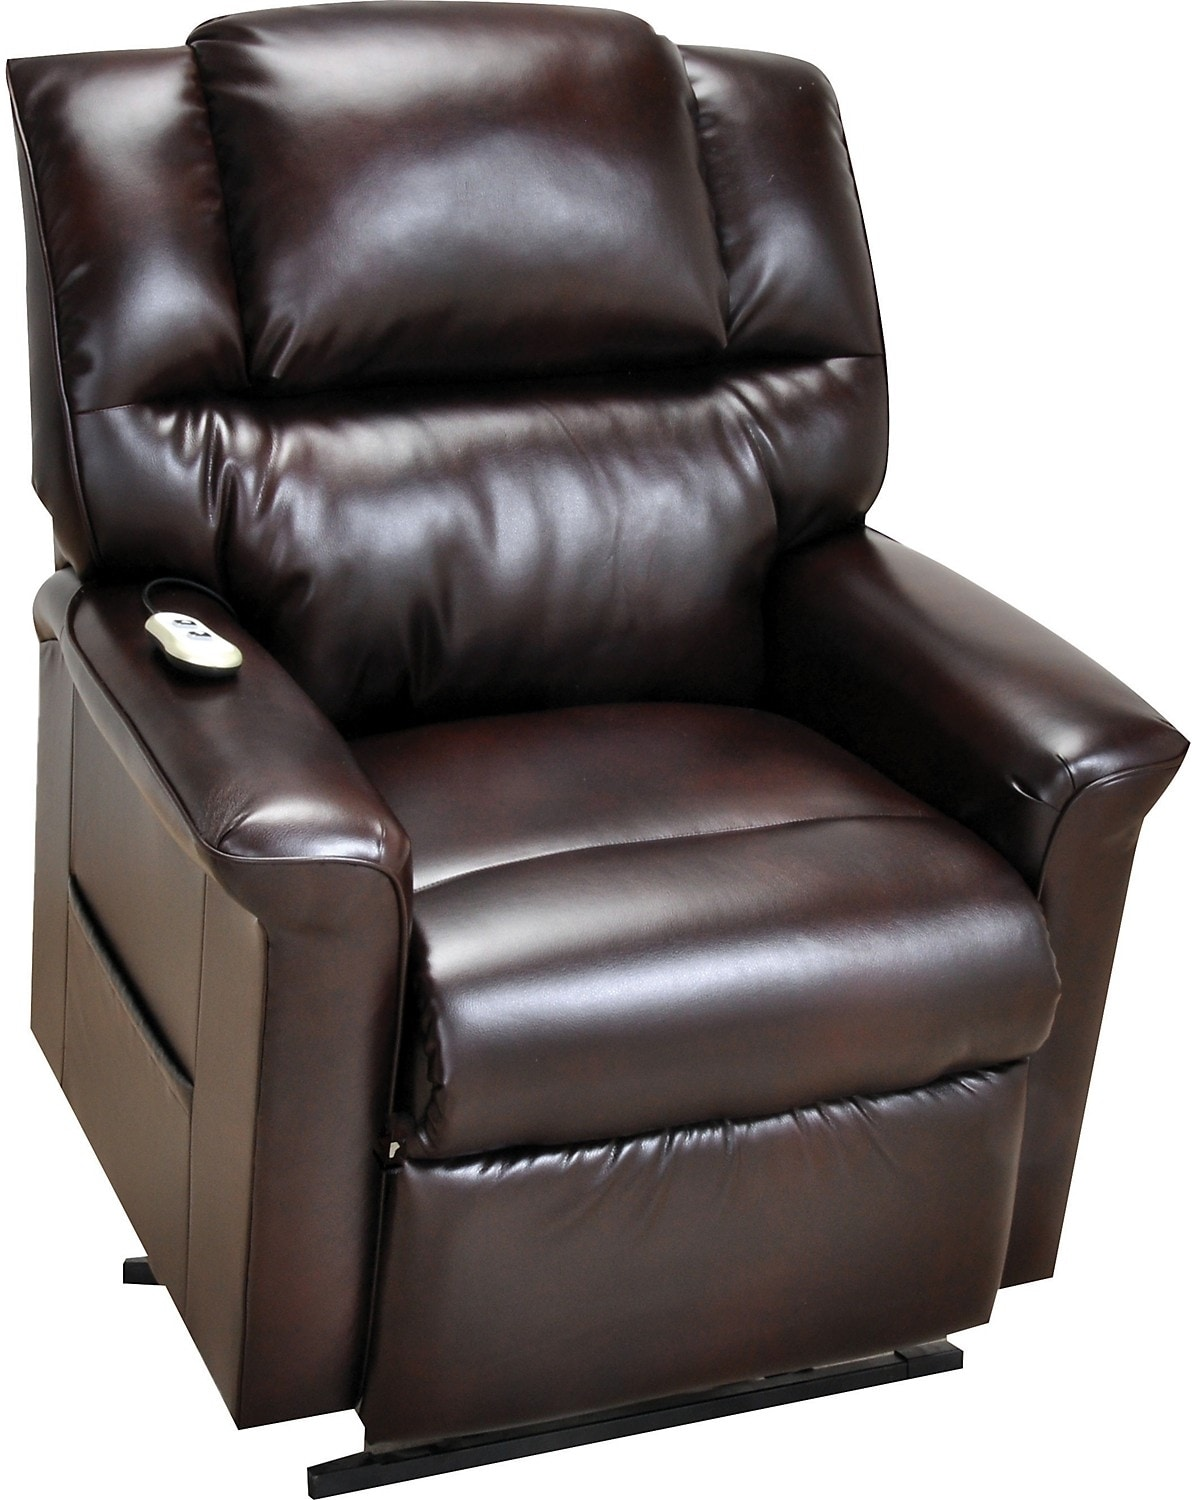 power lift chair amazon ergonomic bonded leather 3 position recliner brown